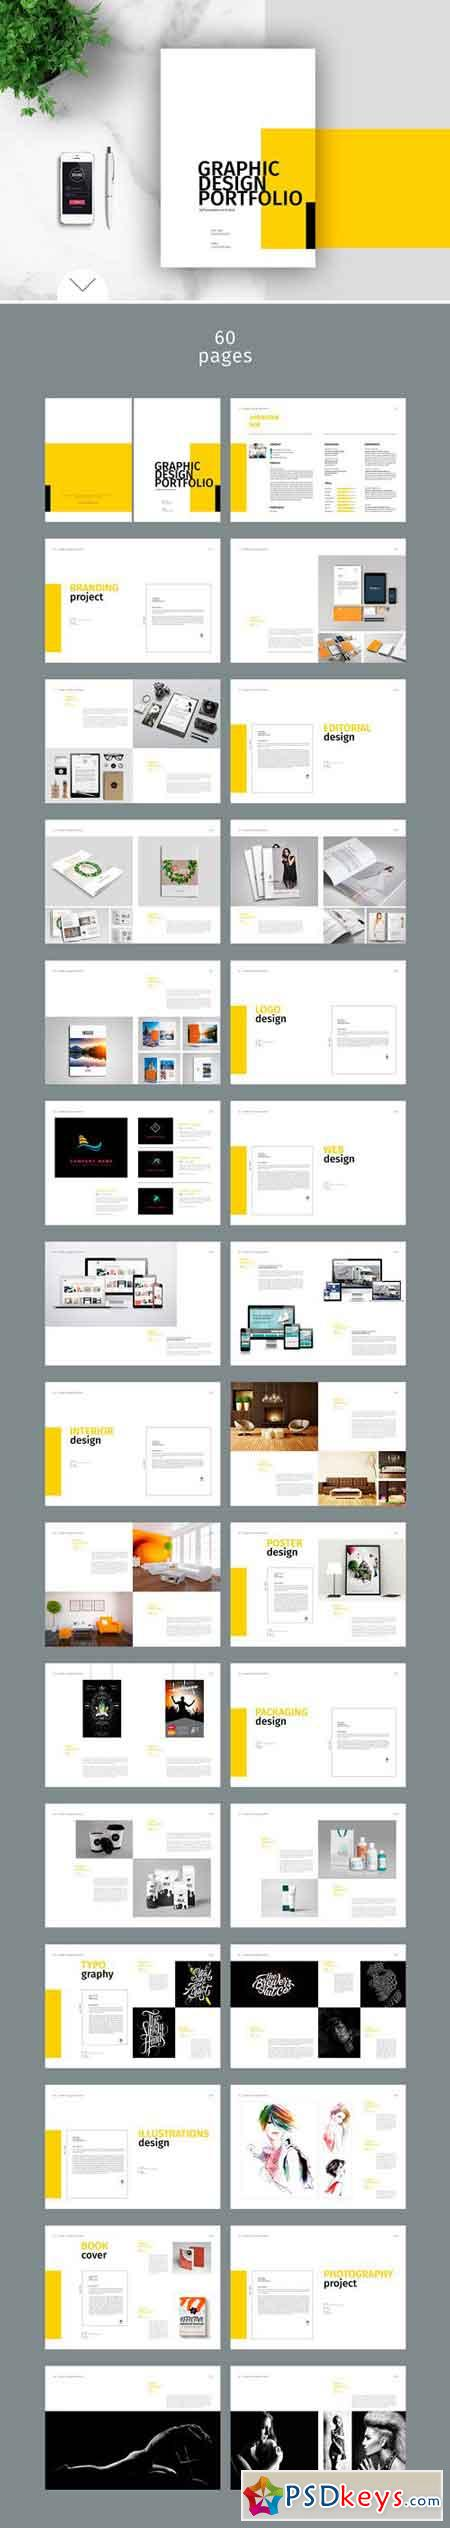 Graphic Design Portfolio Template 1830802